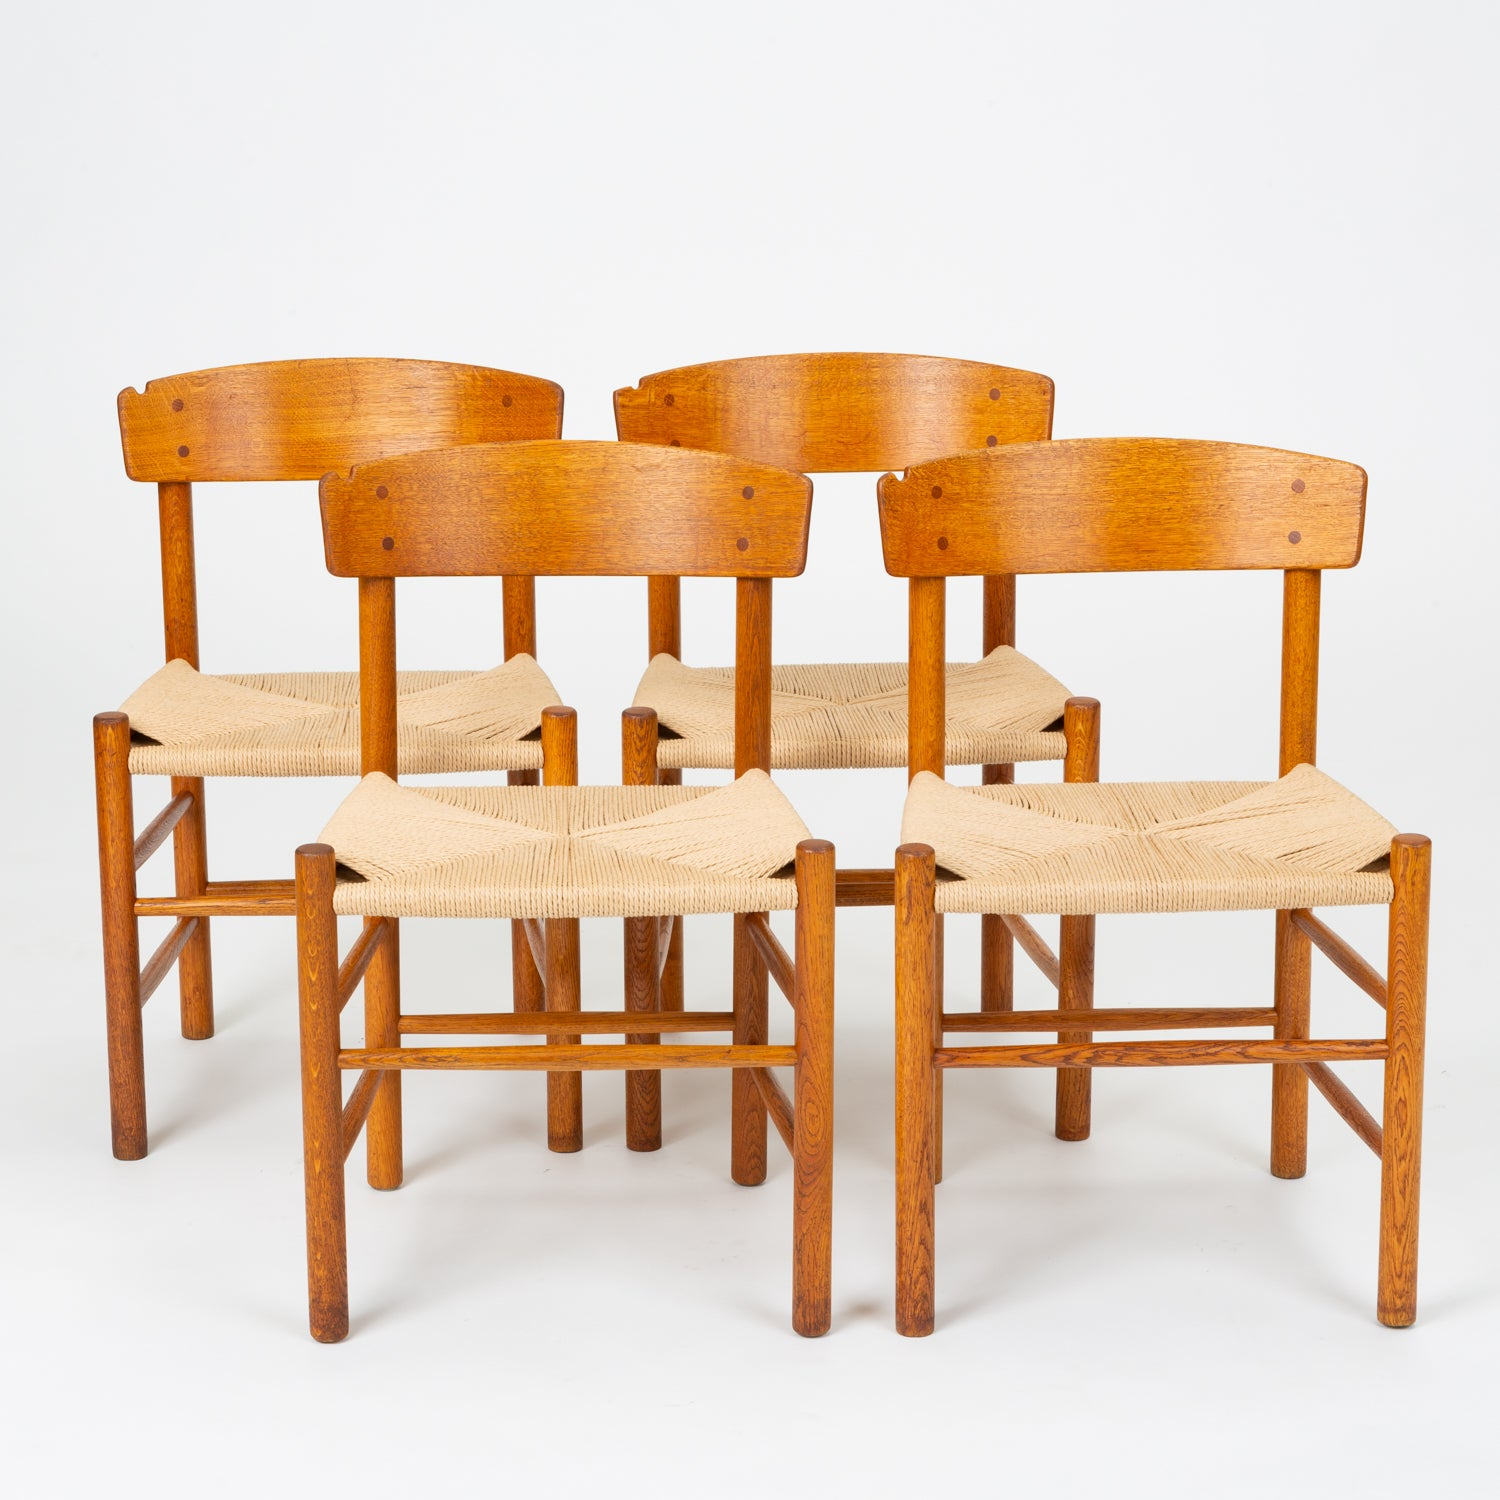 Phenomenal Set Of Four J39 Oak Dining Chairs By Borge Mogensen For Fdb Mobler Gmtry Best Dining Table And Chair Ideas Images Gmtryco